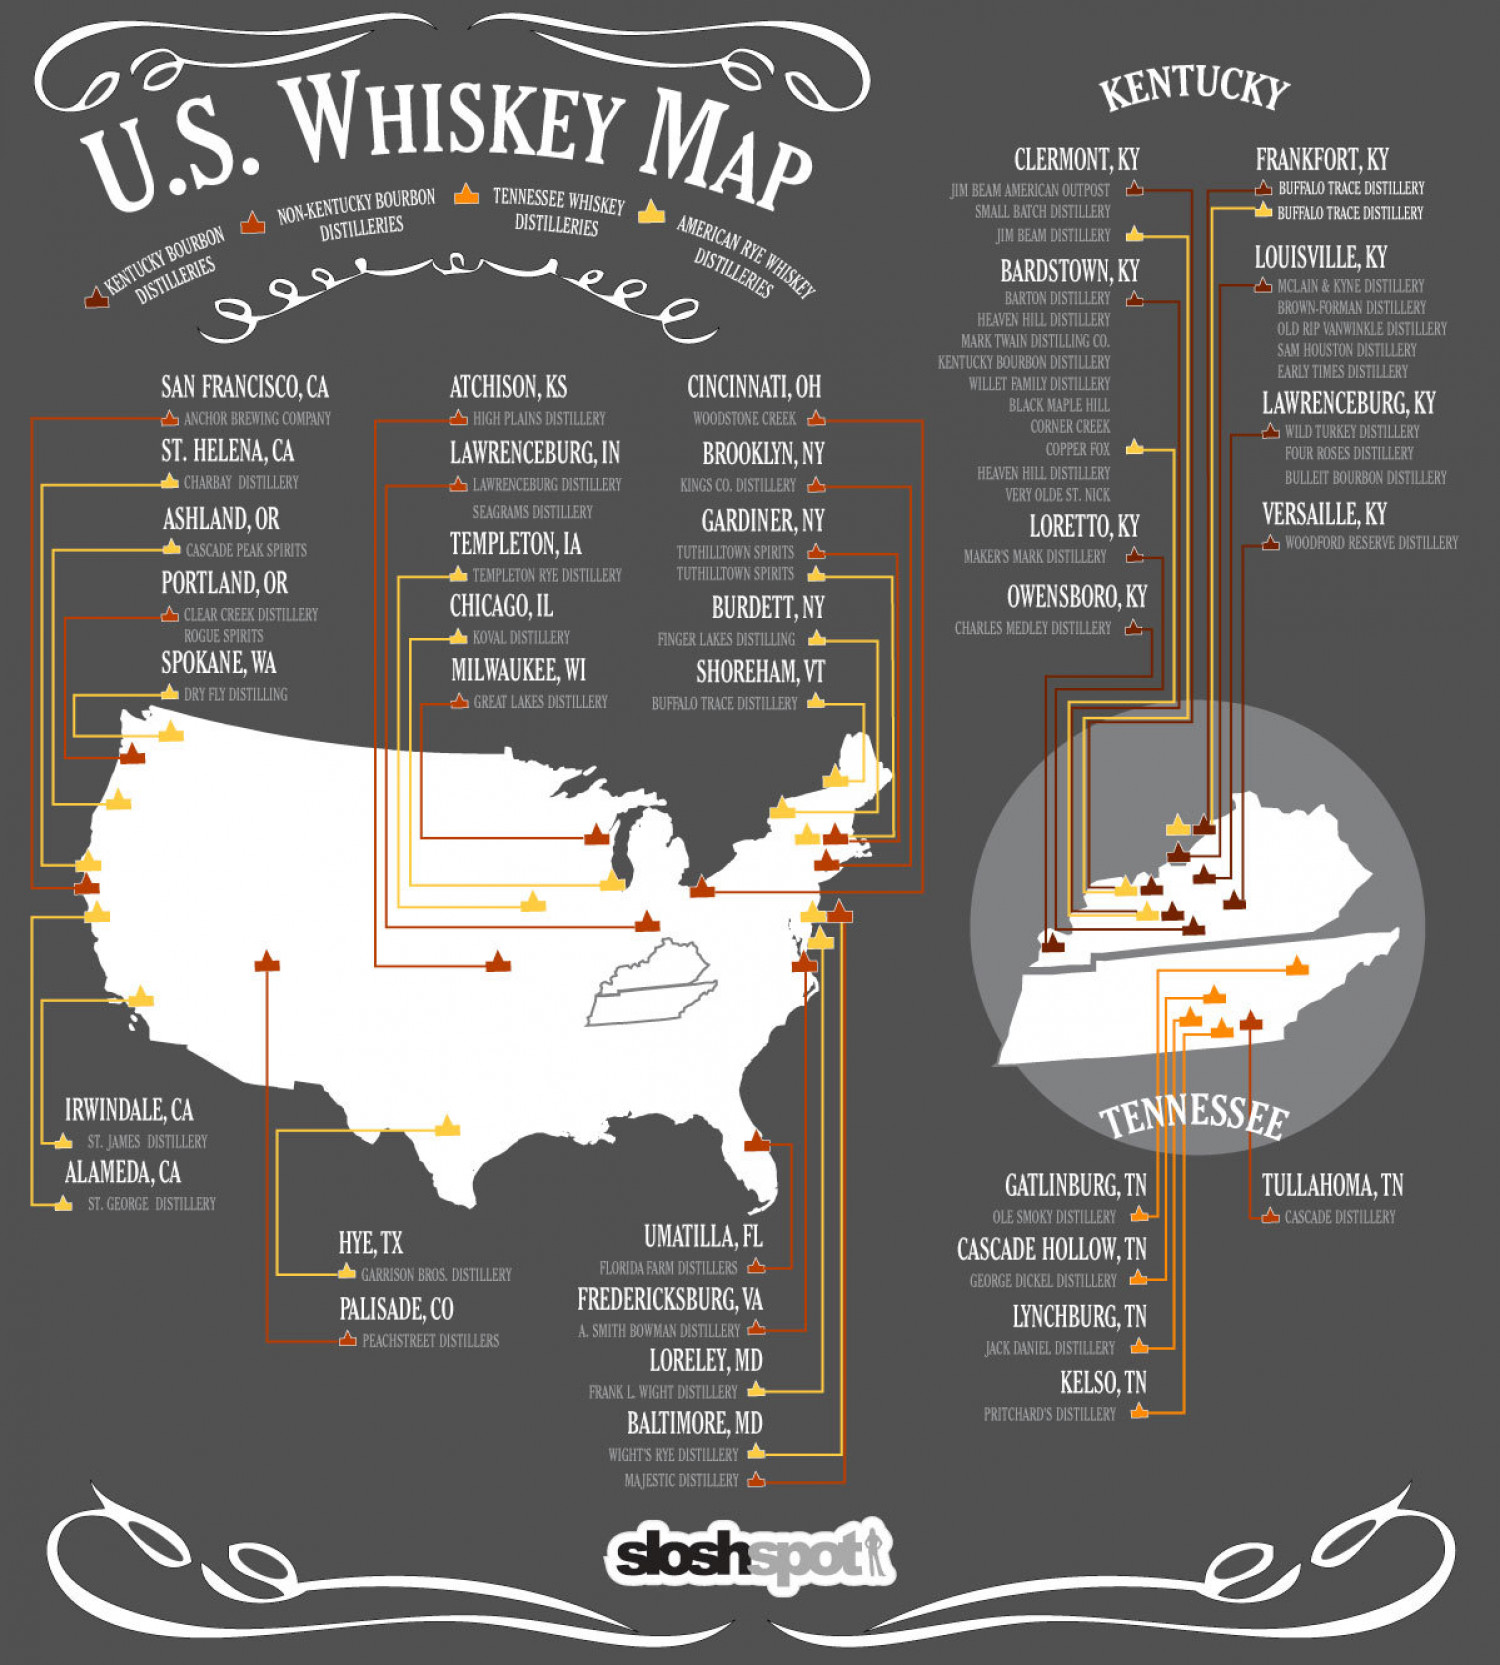 Us whiskey map for Ky bourbon trail craft tour map